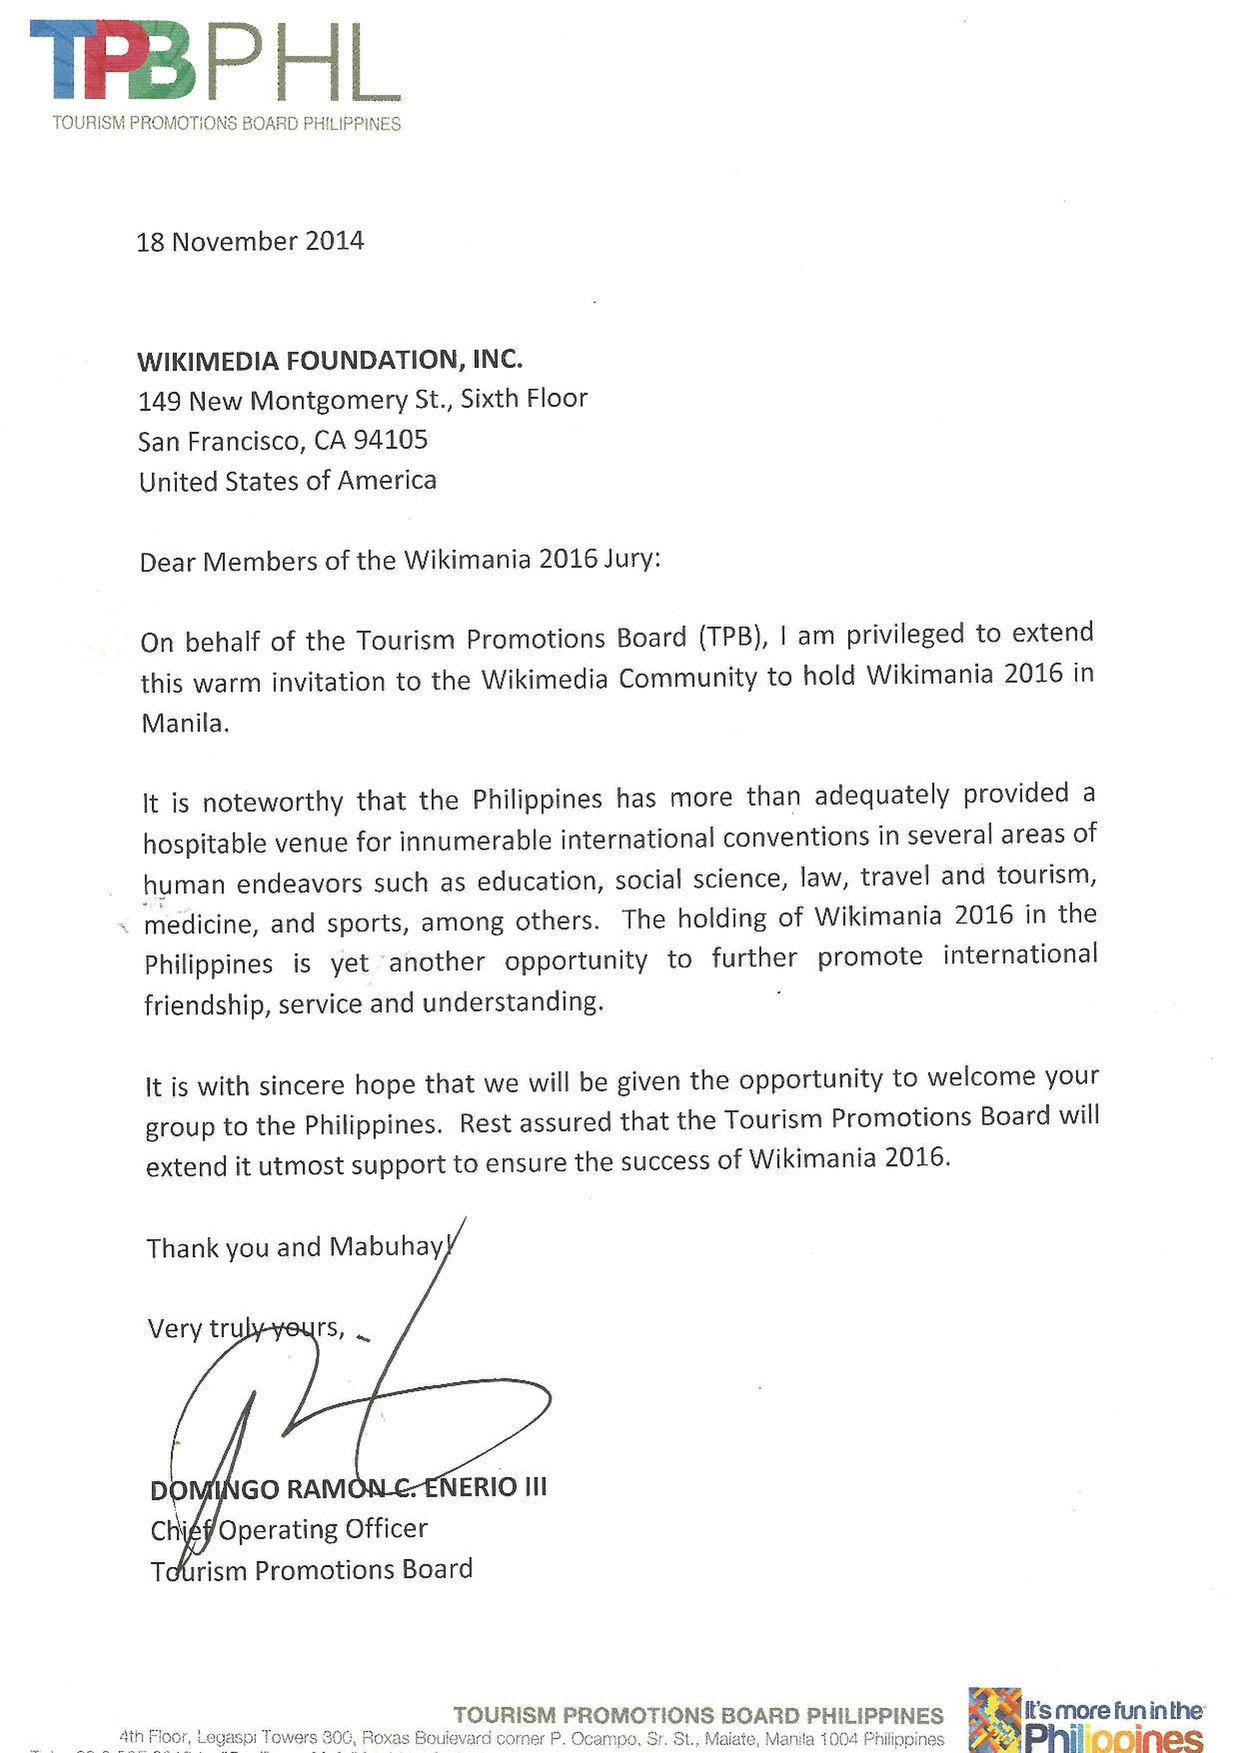 filewikimania manila 2016 endorsement letter tourism